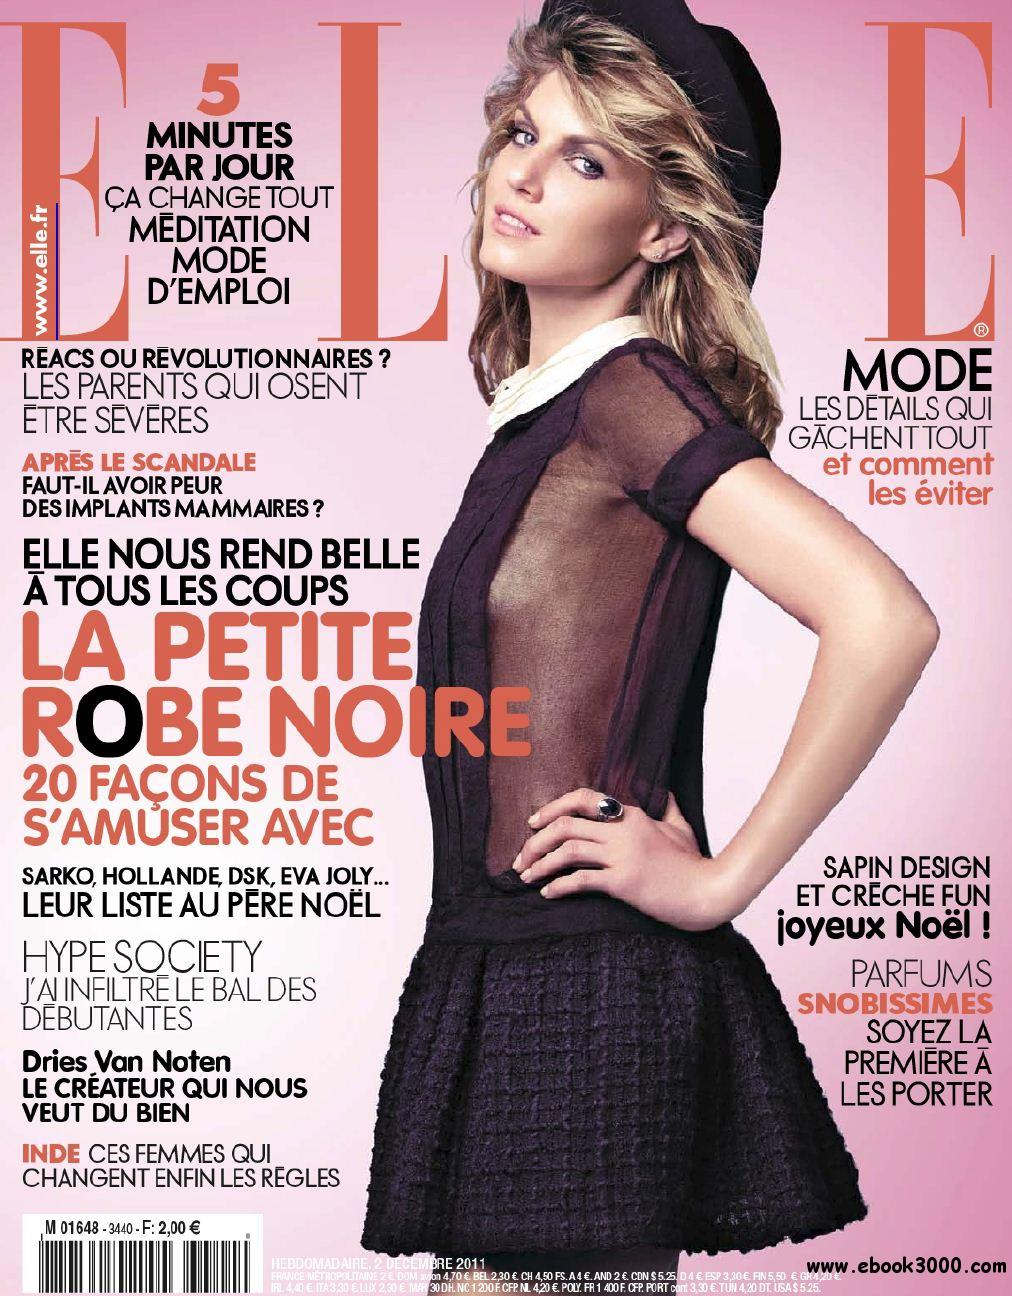 Elle N 3440 et Supplement Elle Paris du 2 au 9 Decembre 2011 free download